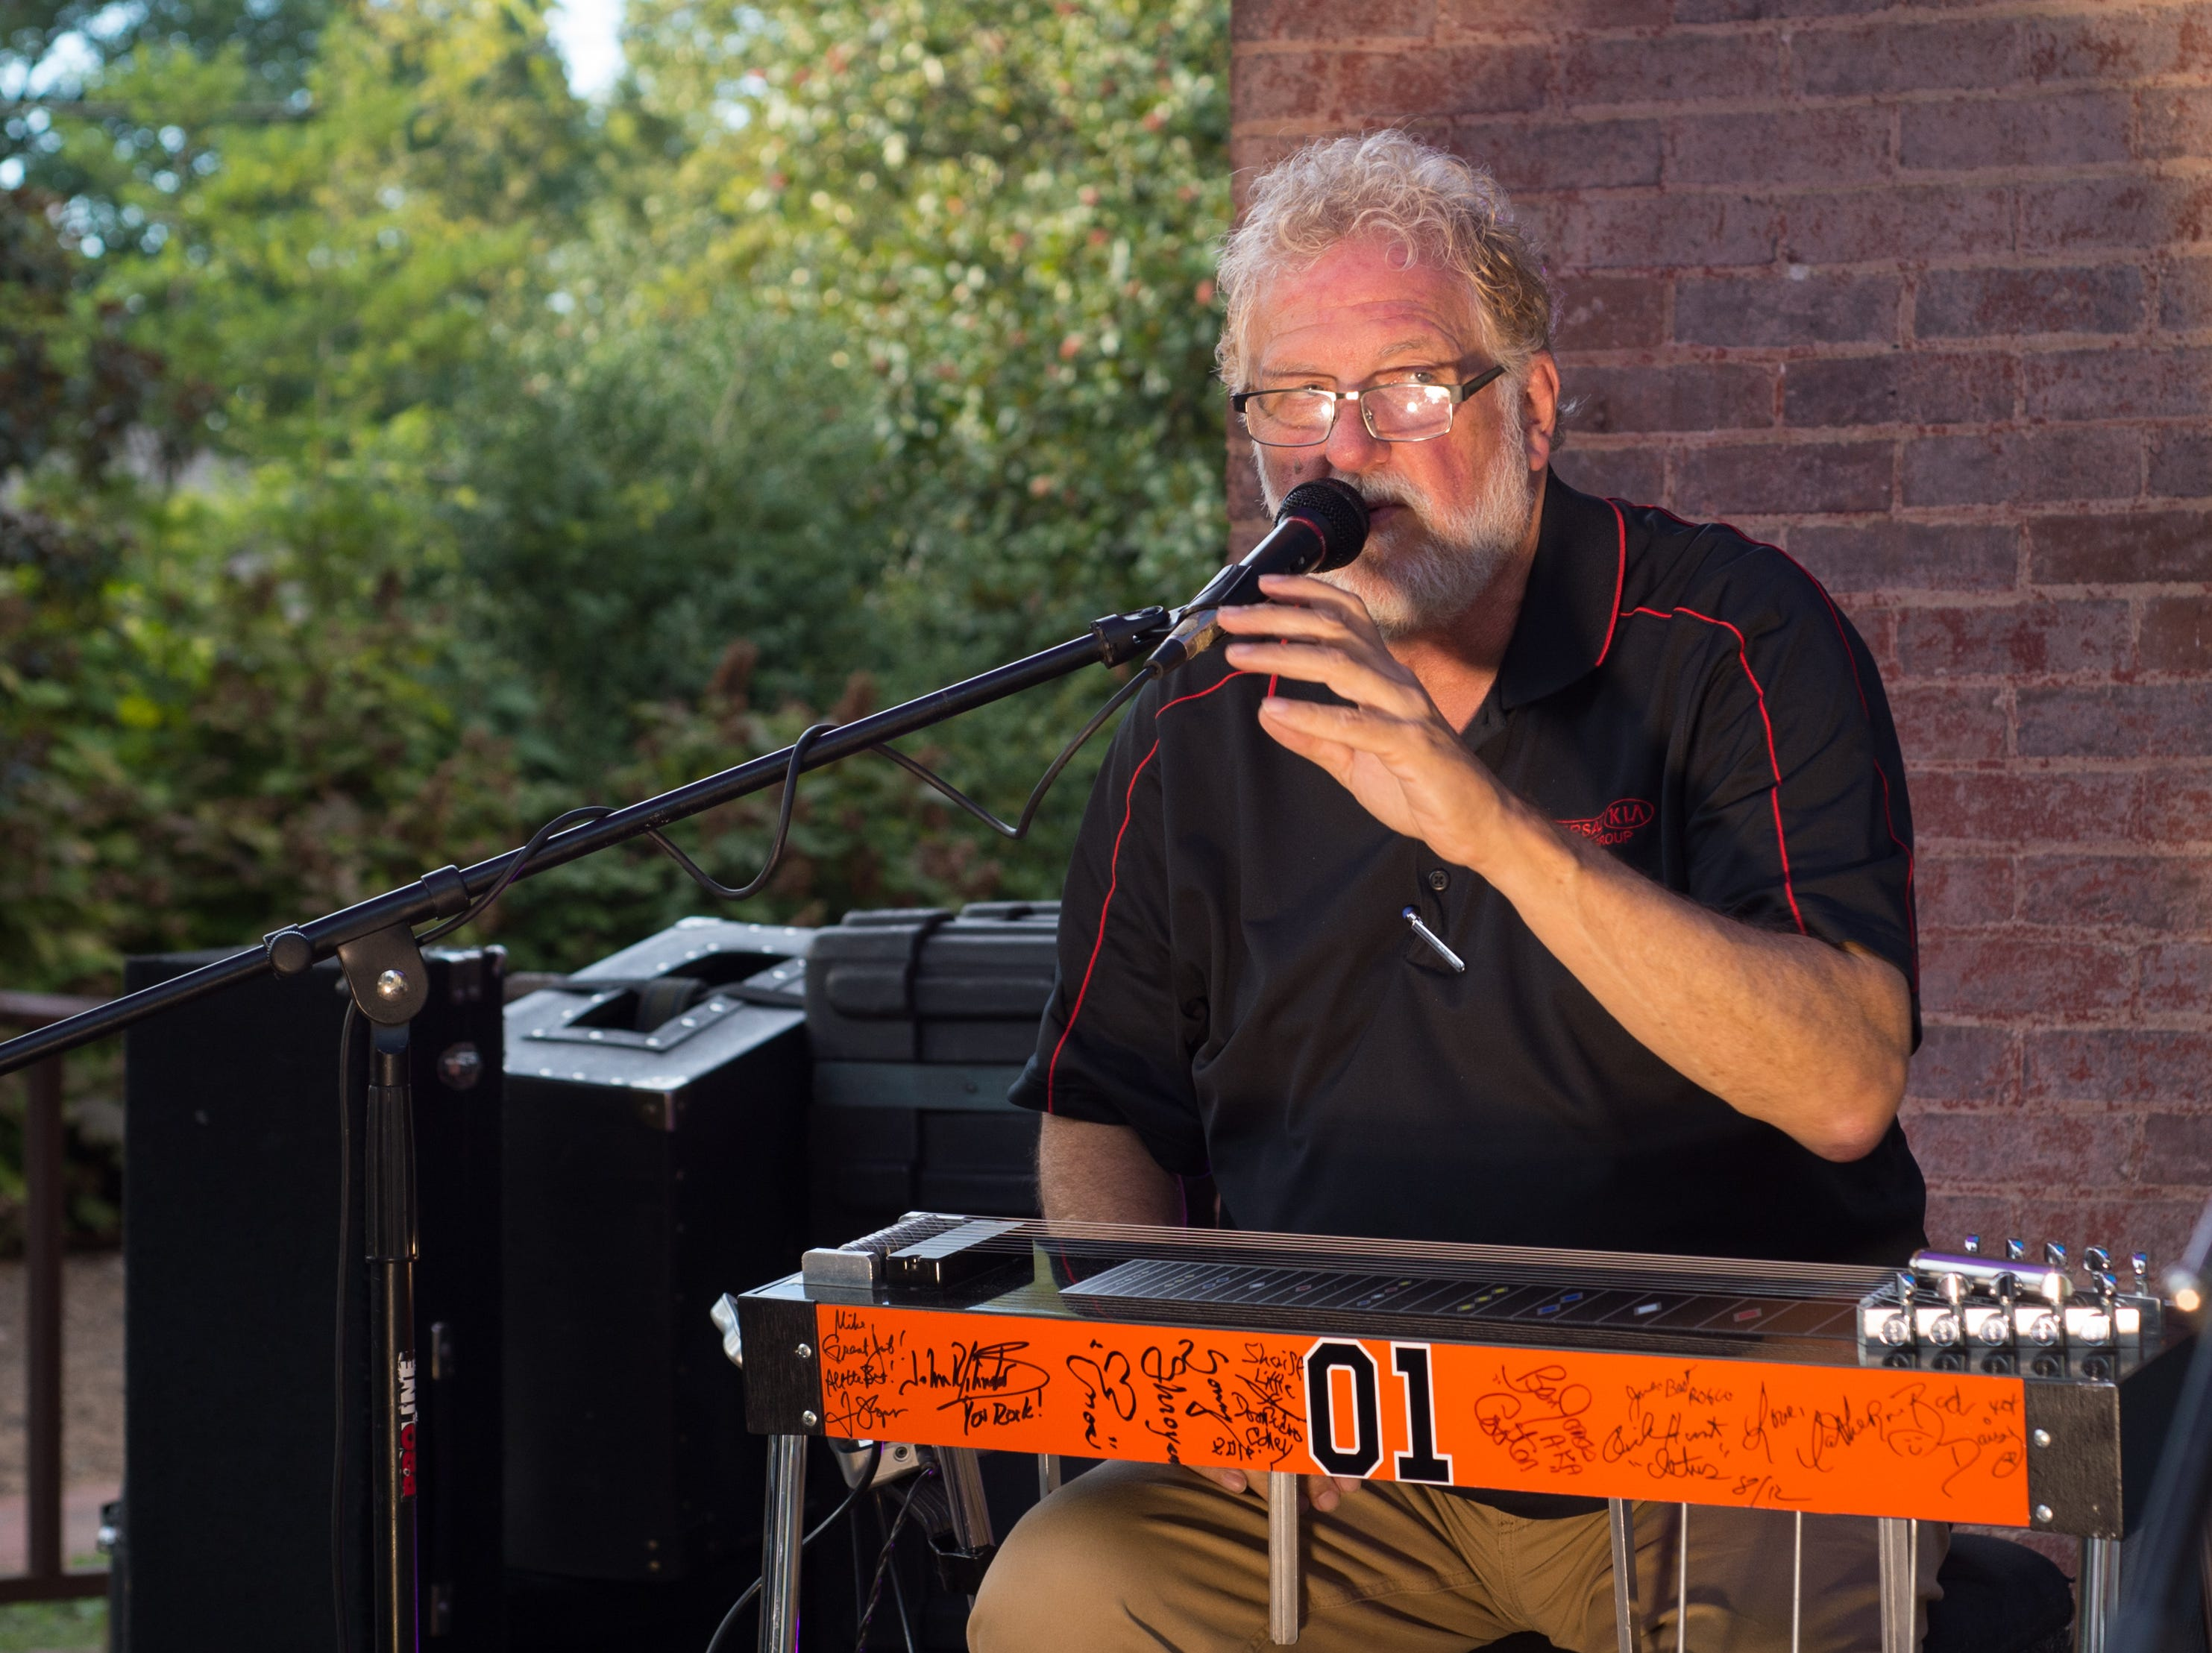 Music Filled the air during Oktoberfest at Oaklands Mansion in Murfreesboro on Saturday, Sept. 29.